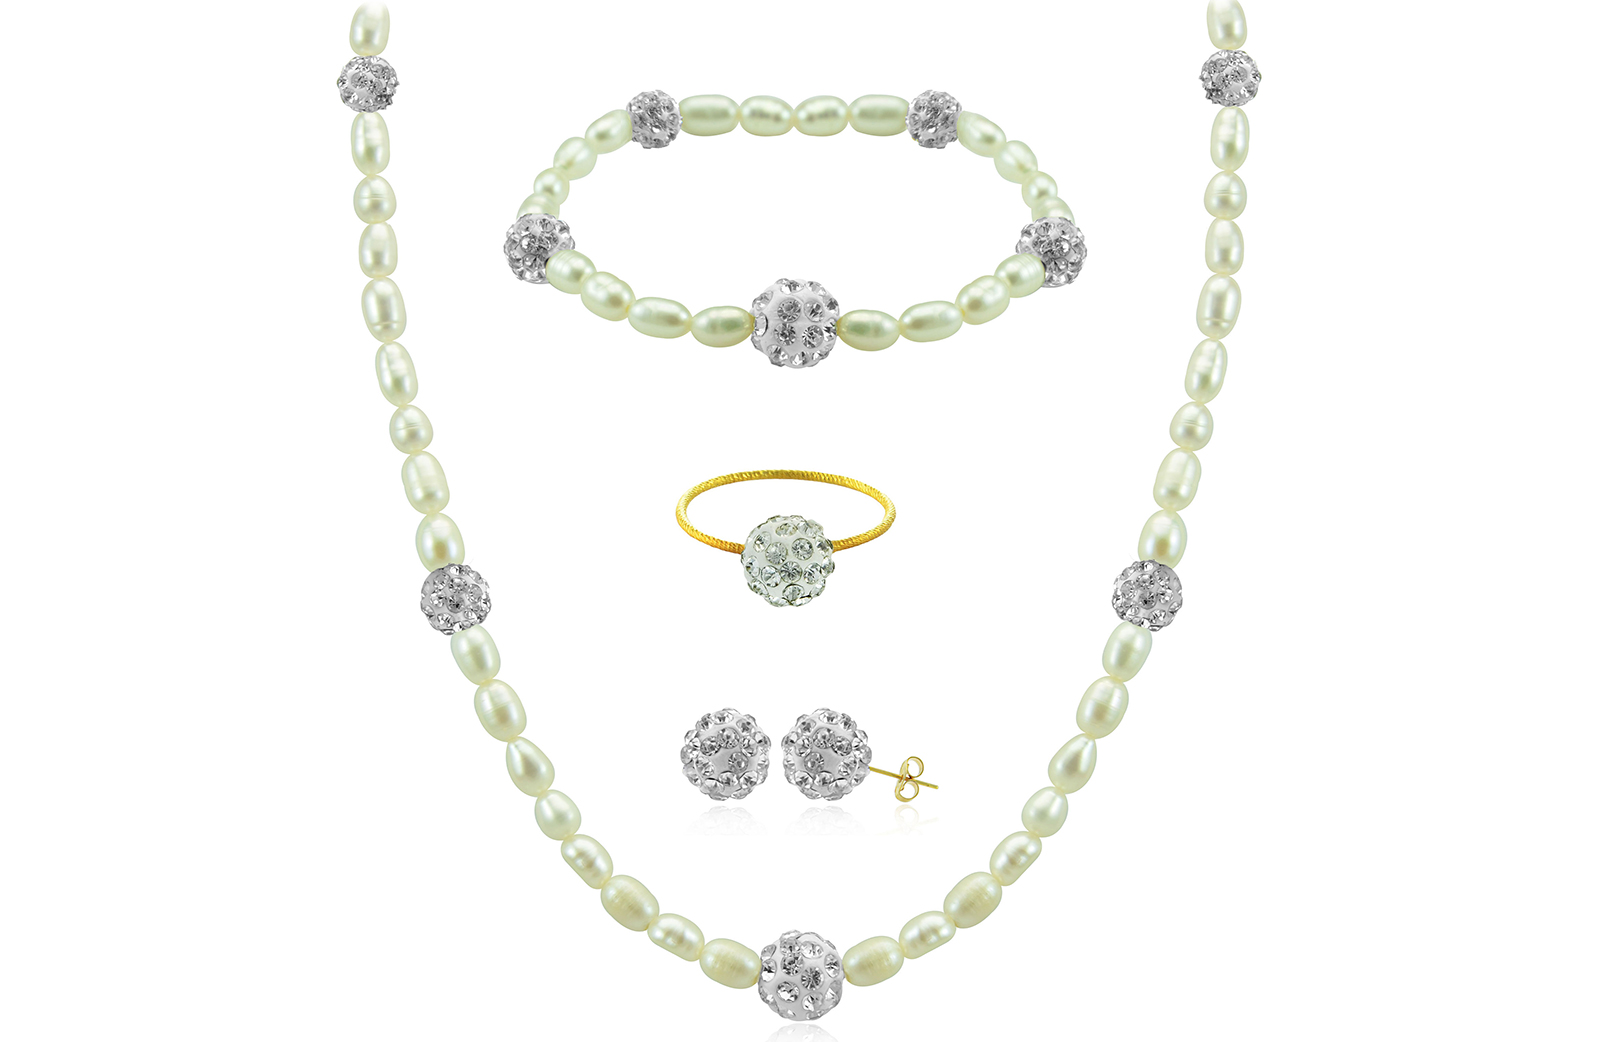 Vera Perla 10K Gold Gradual Built-in Crystal Balls & Pearls Strand 4 pcs. Jewelry Set